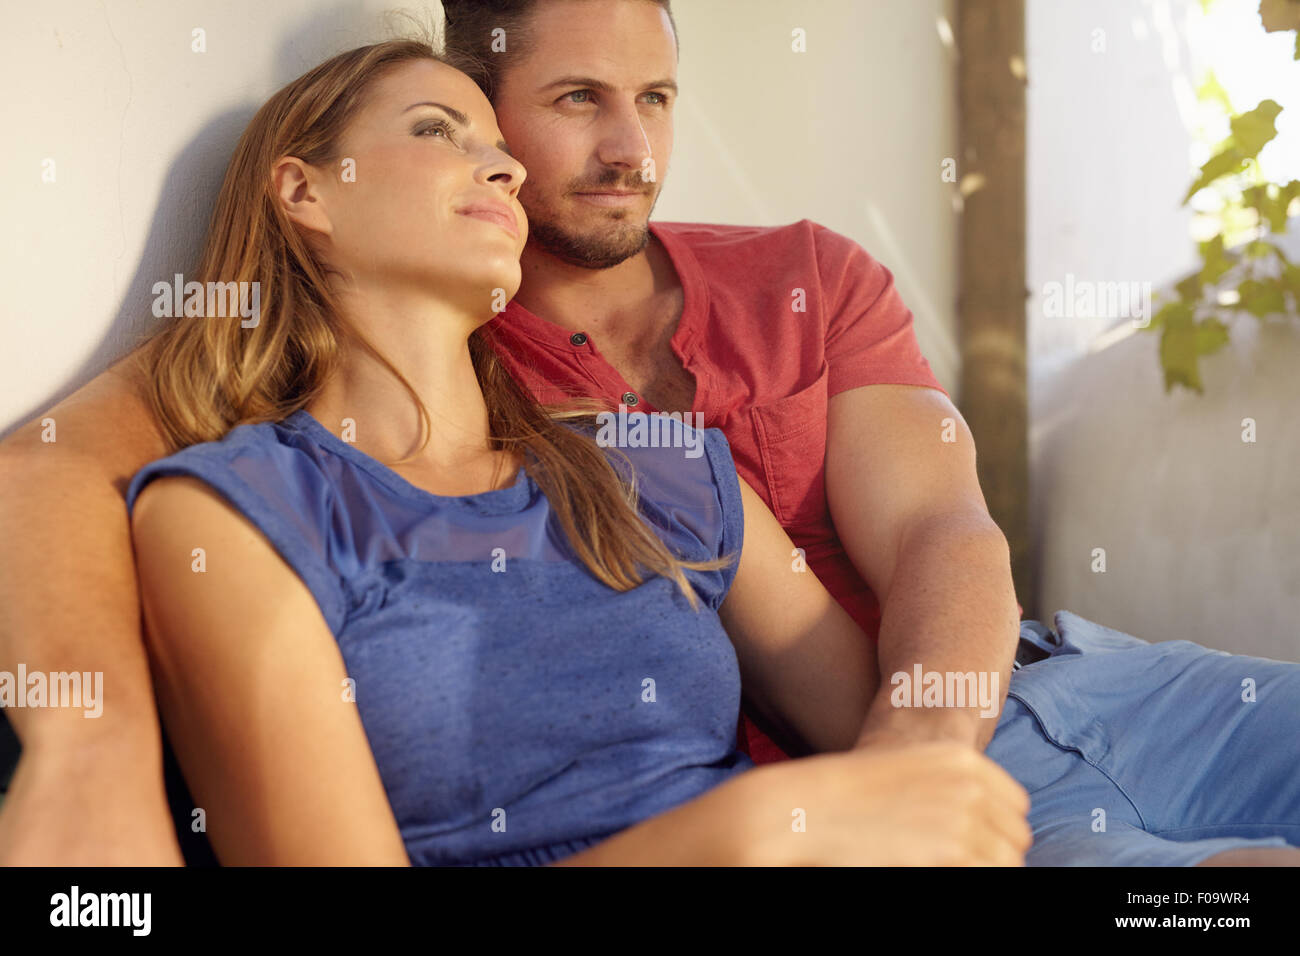 Outdoor shot of loving young man and woman sitting in their backyard. Love couple sitting relaxed together in patio. - Stock Image